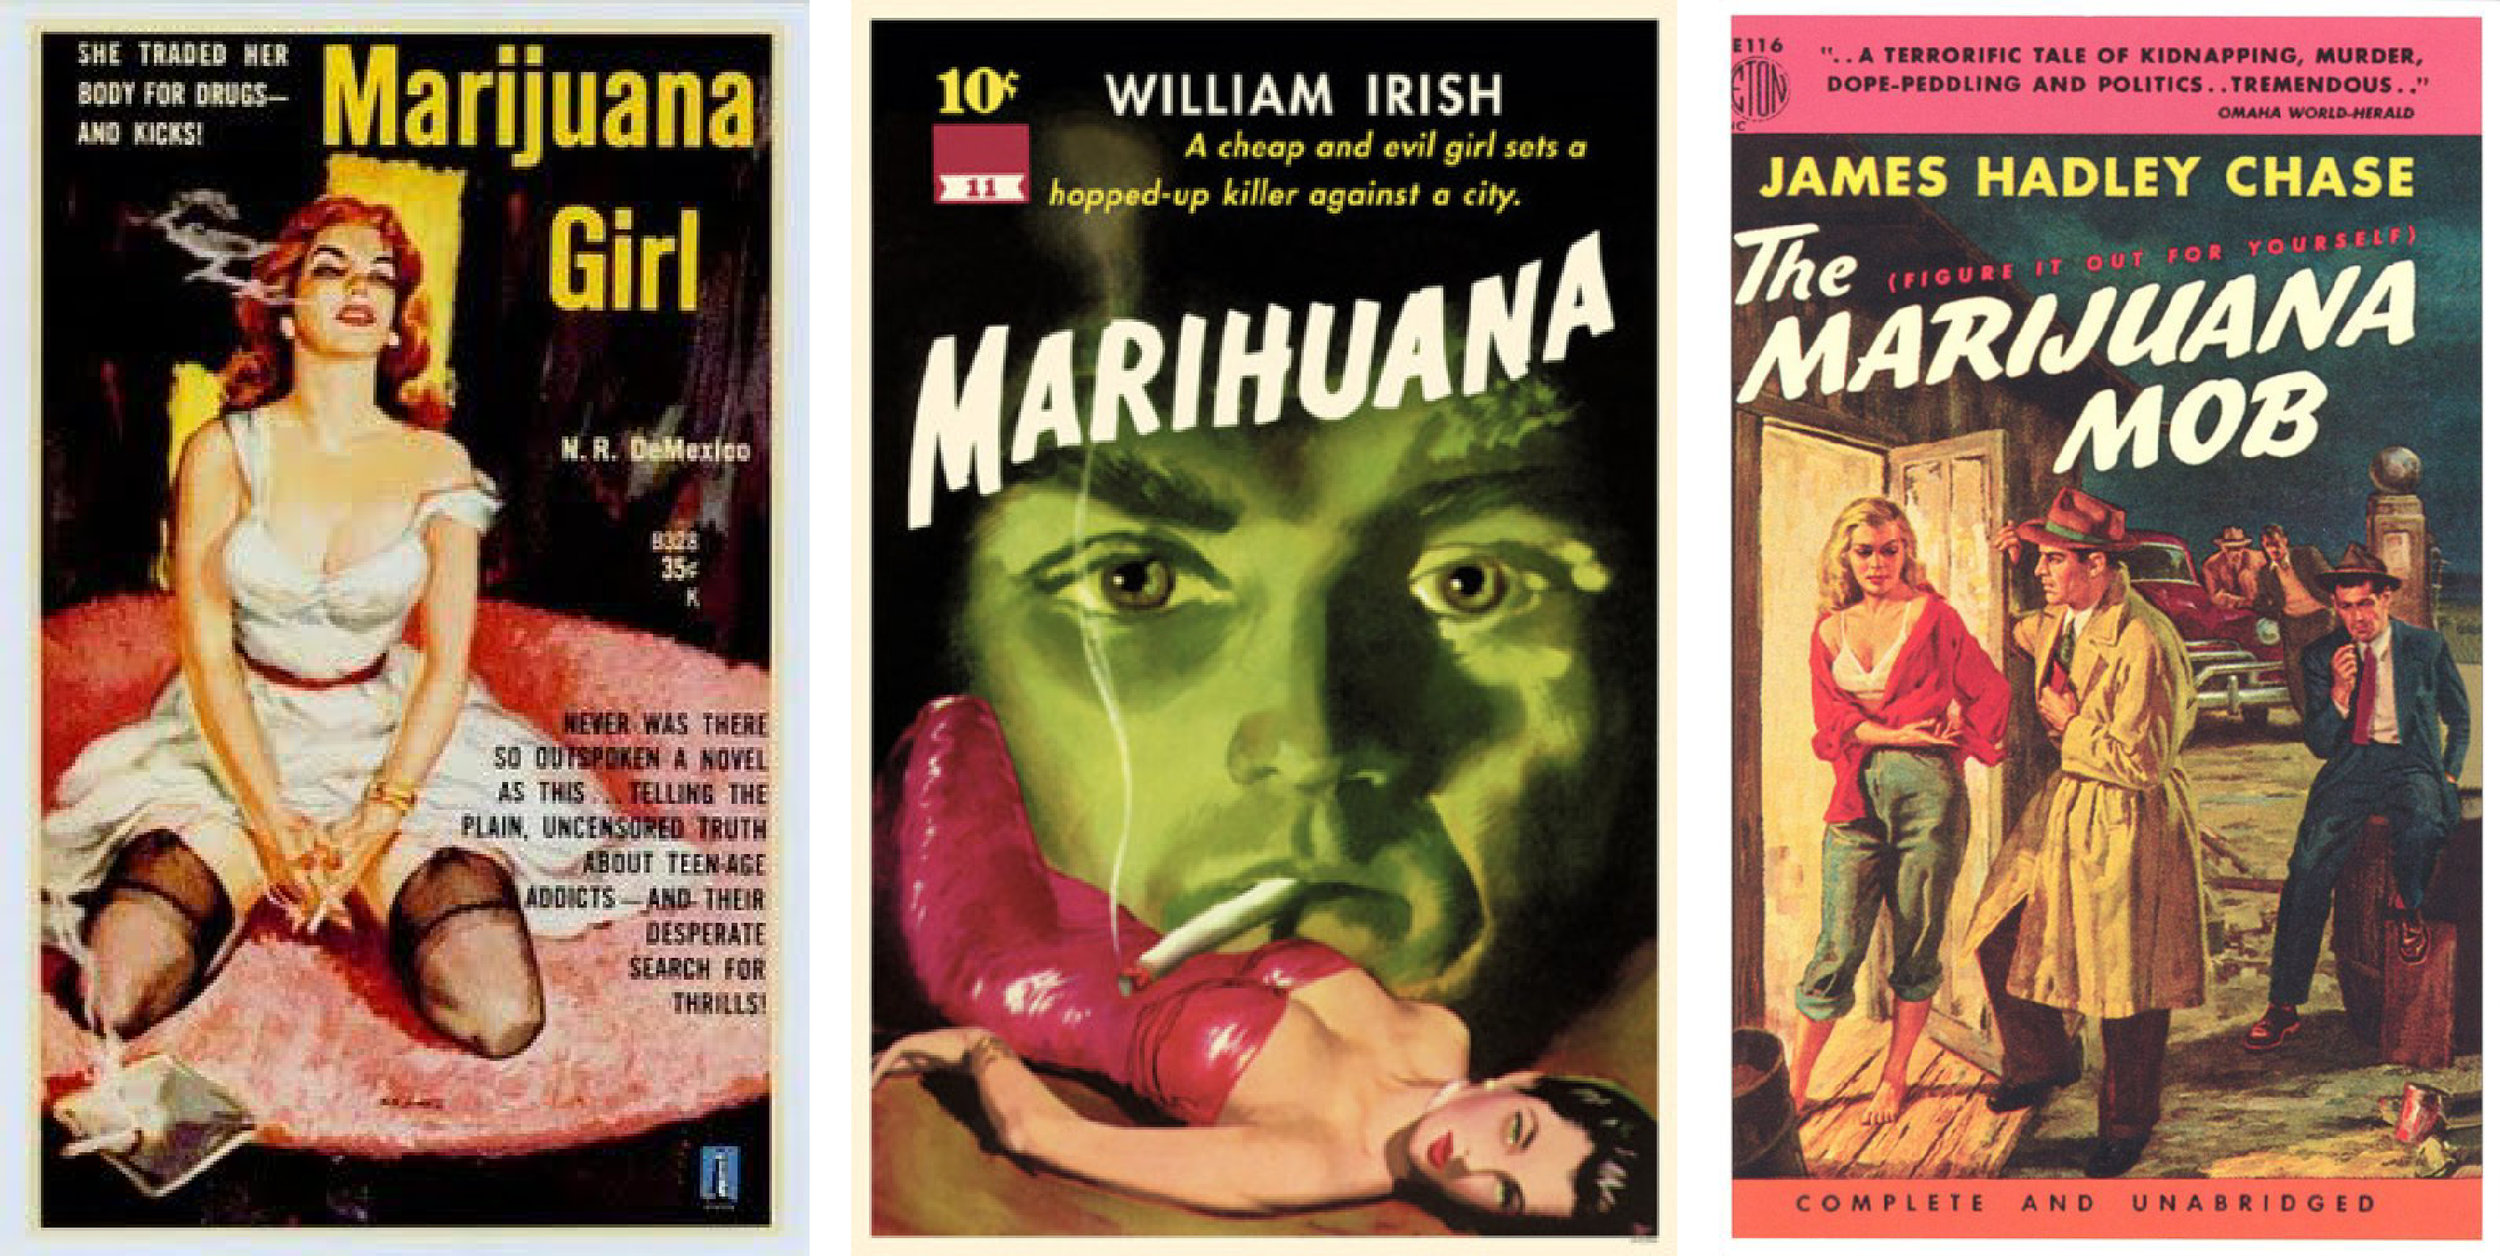 Pulp novels fueled the anti-cannabis fire circa the 1940s and '50s, and even into the 1960s.